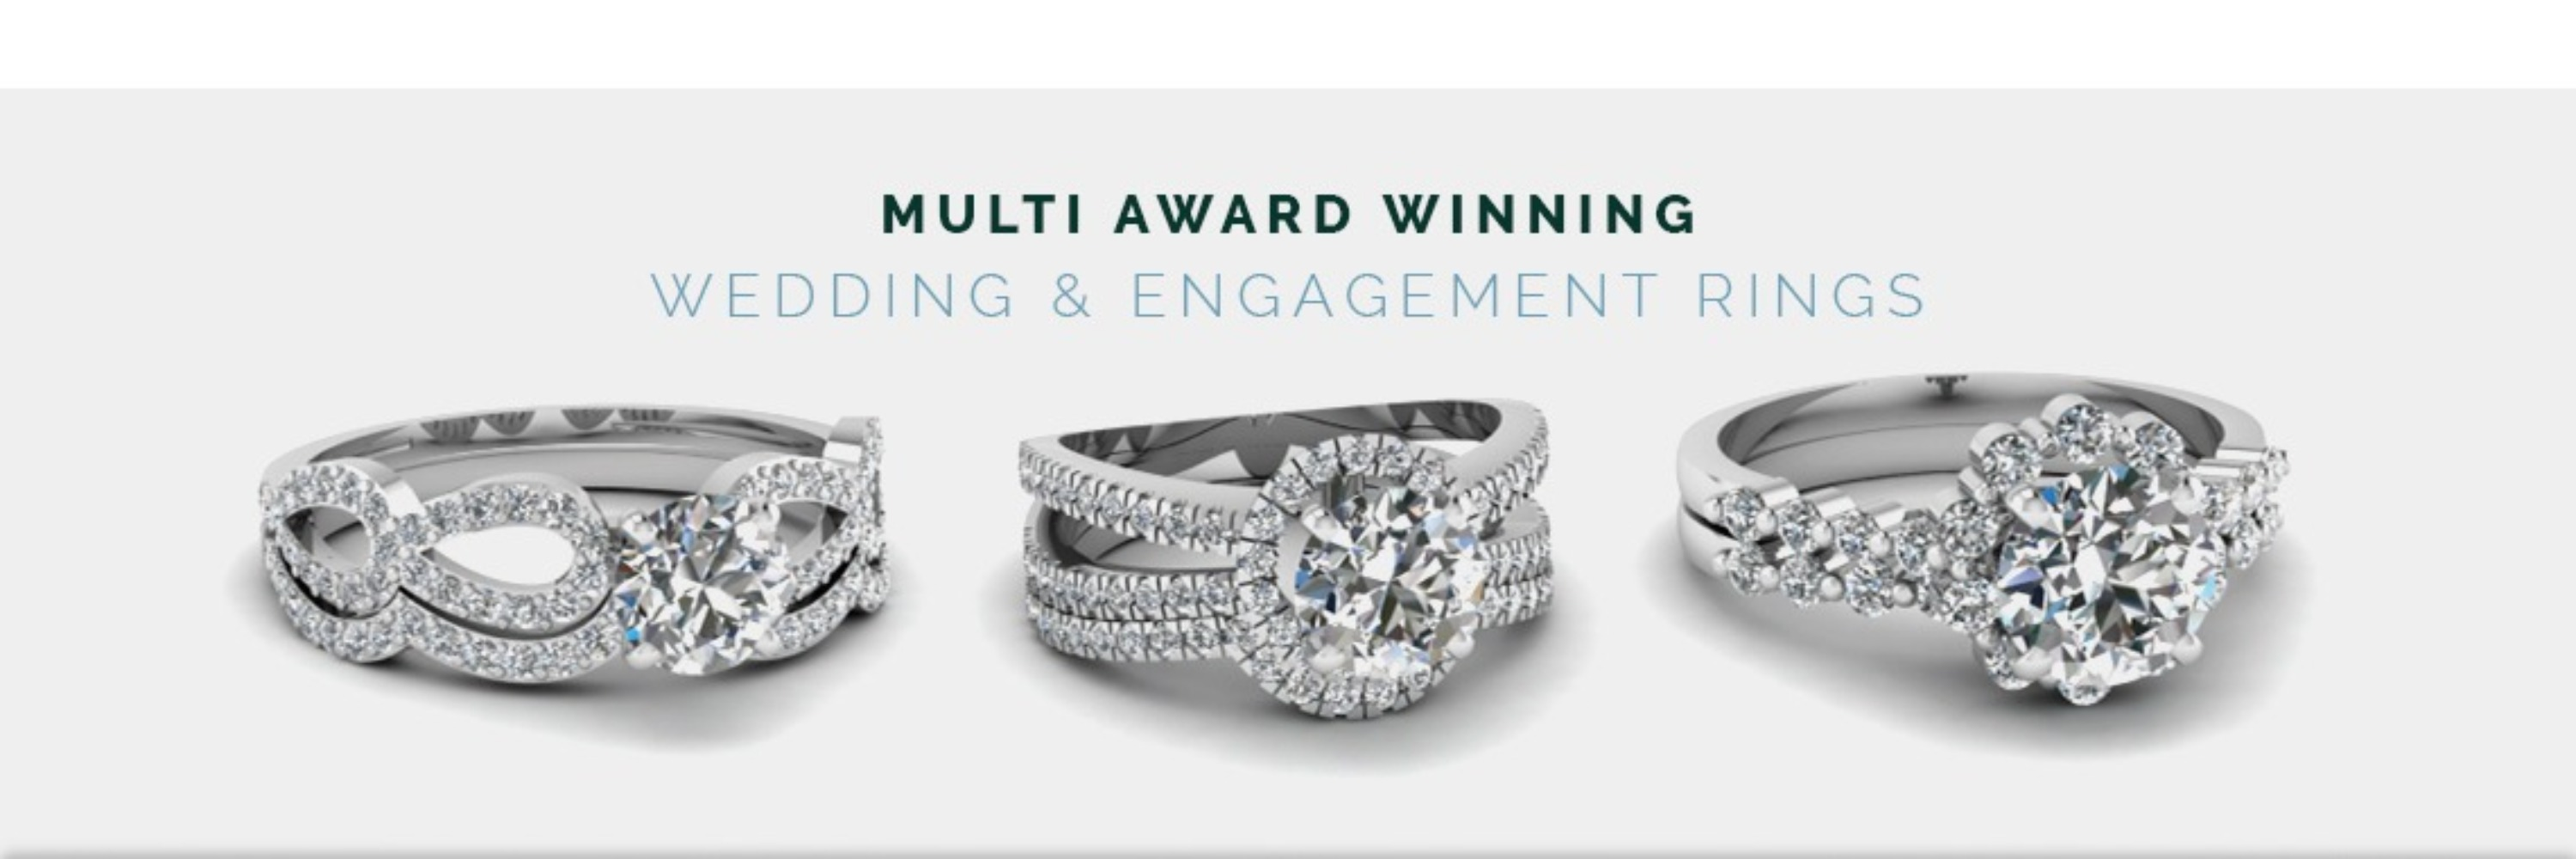 Award Winning Engagement Rings